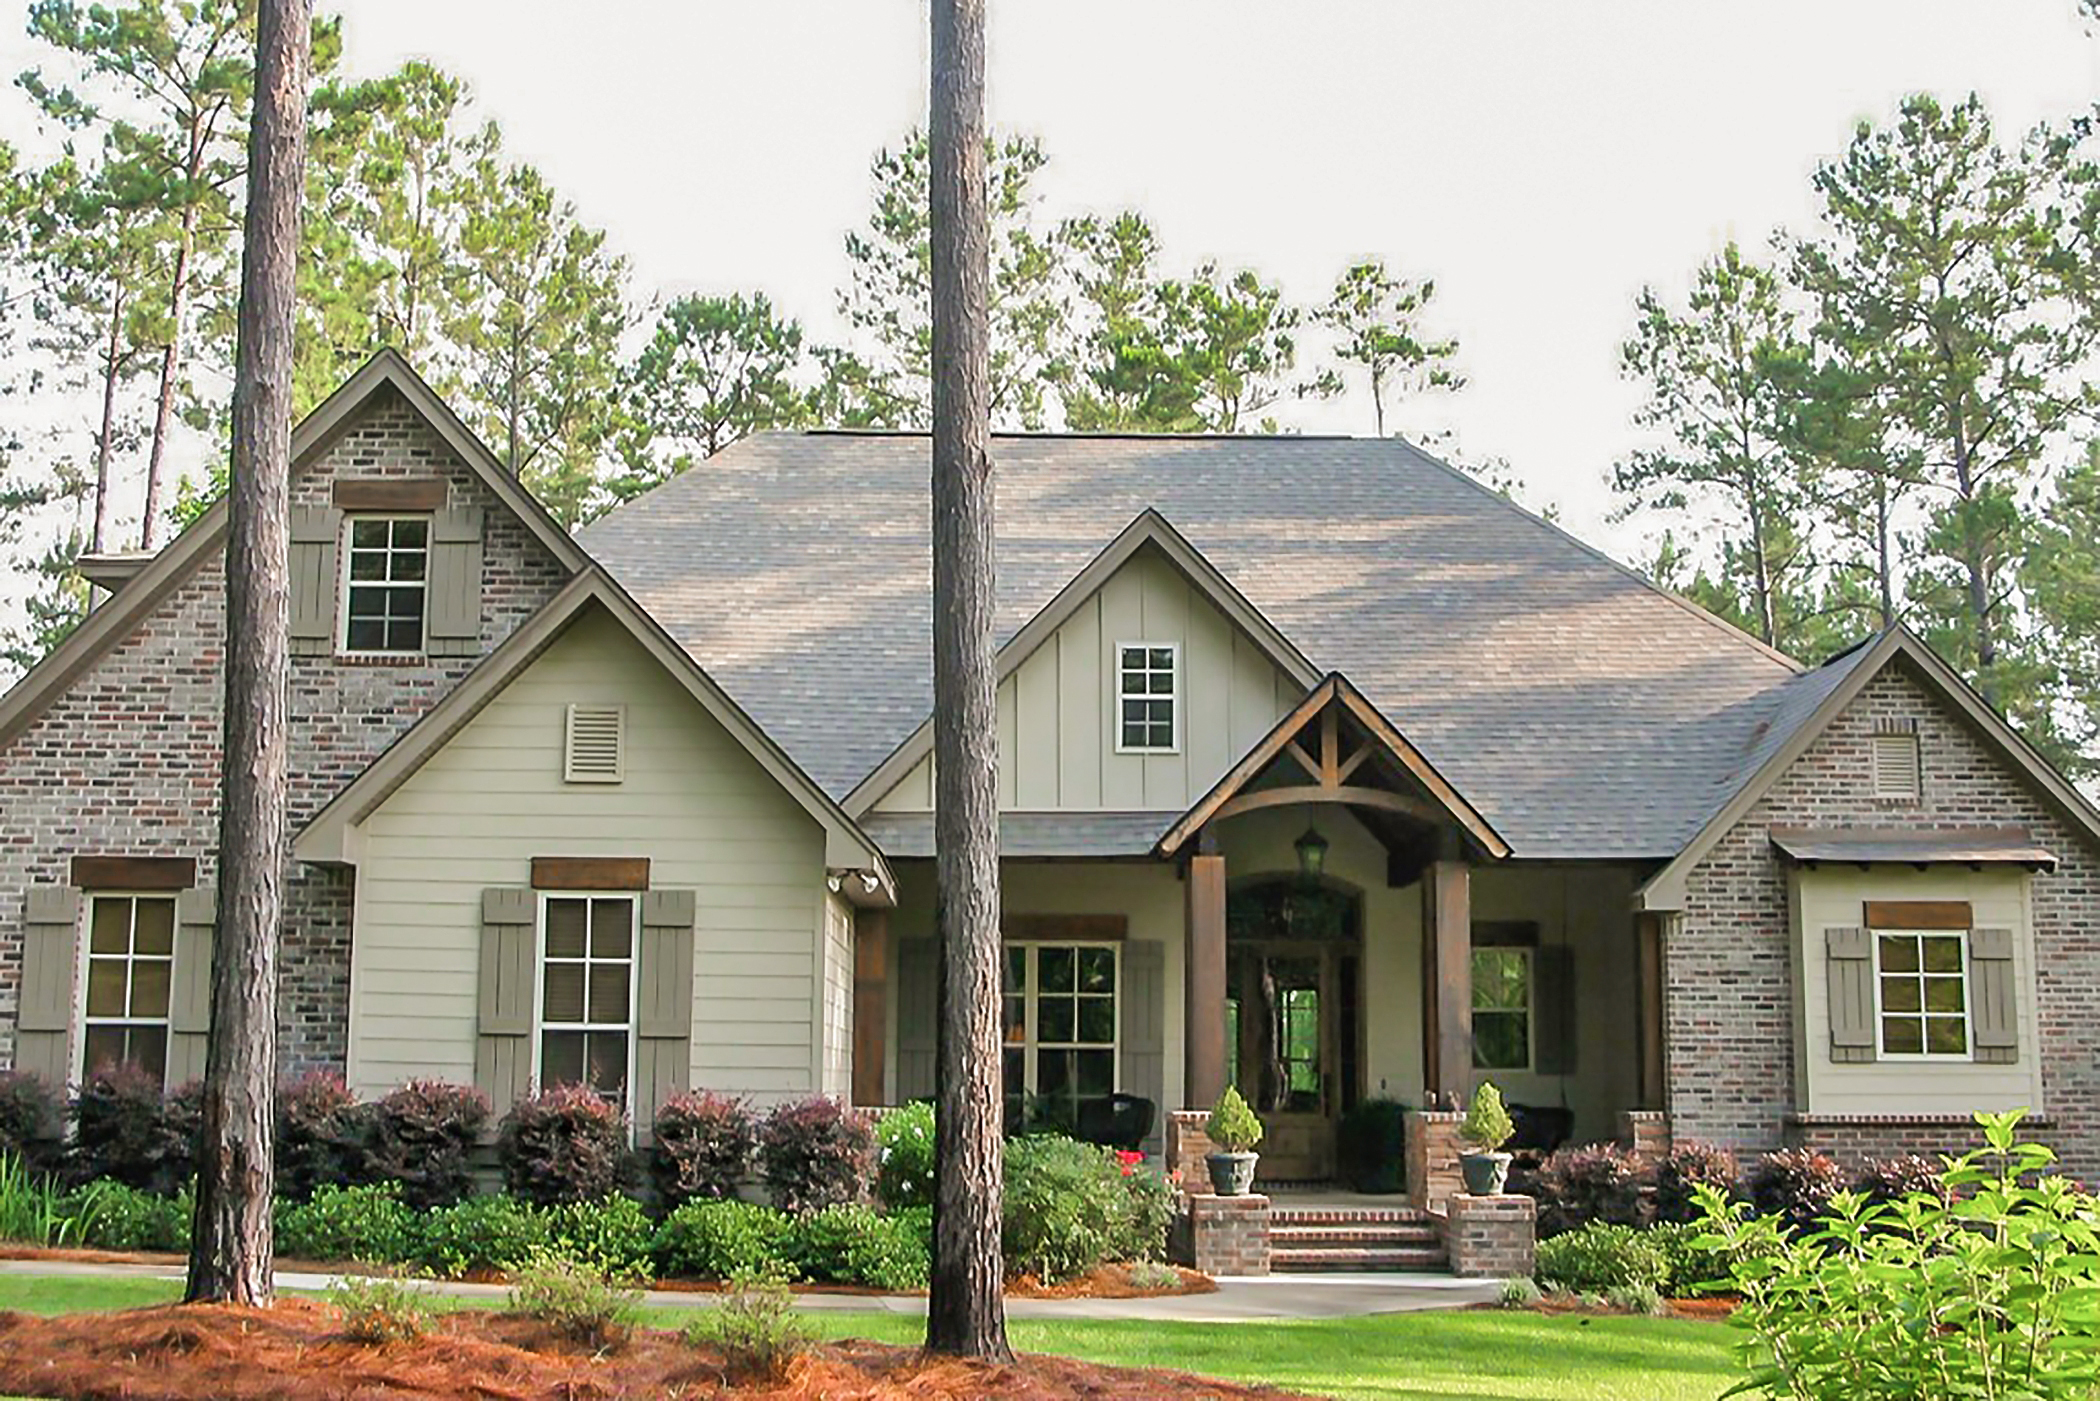 Small house plan home plan 142 -  142 1168 Front Elevation Of Craftsman Home Plan Theplancollection House Plan 142 1168